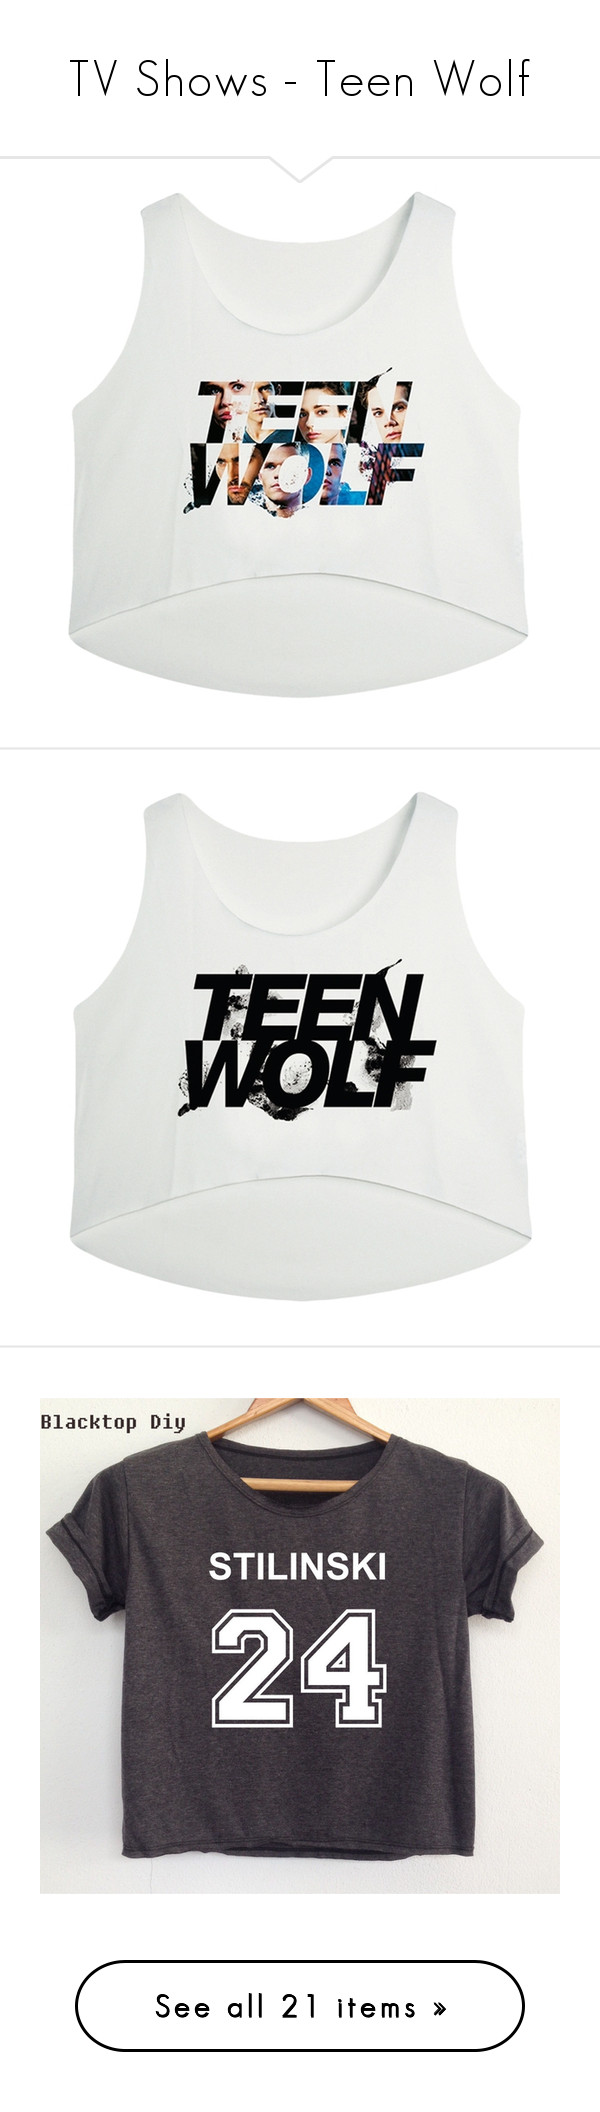 """""""TV Shows - Teen Wolf"""" by louiseeleanorbee ❤ liked on Polyvore featuring tops, crop top, shirts, white, white top, crop shirts, white crop shirt, white shirt, crop tops and teen wolf"""